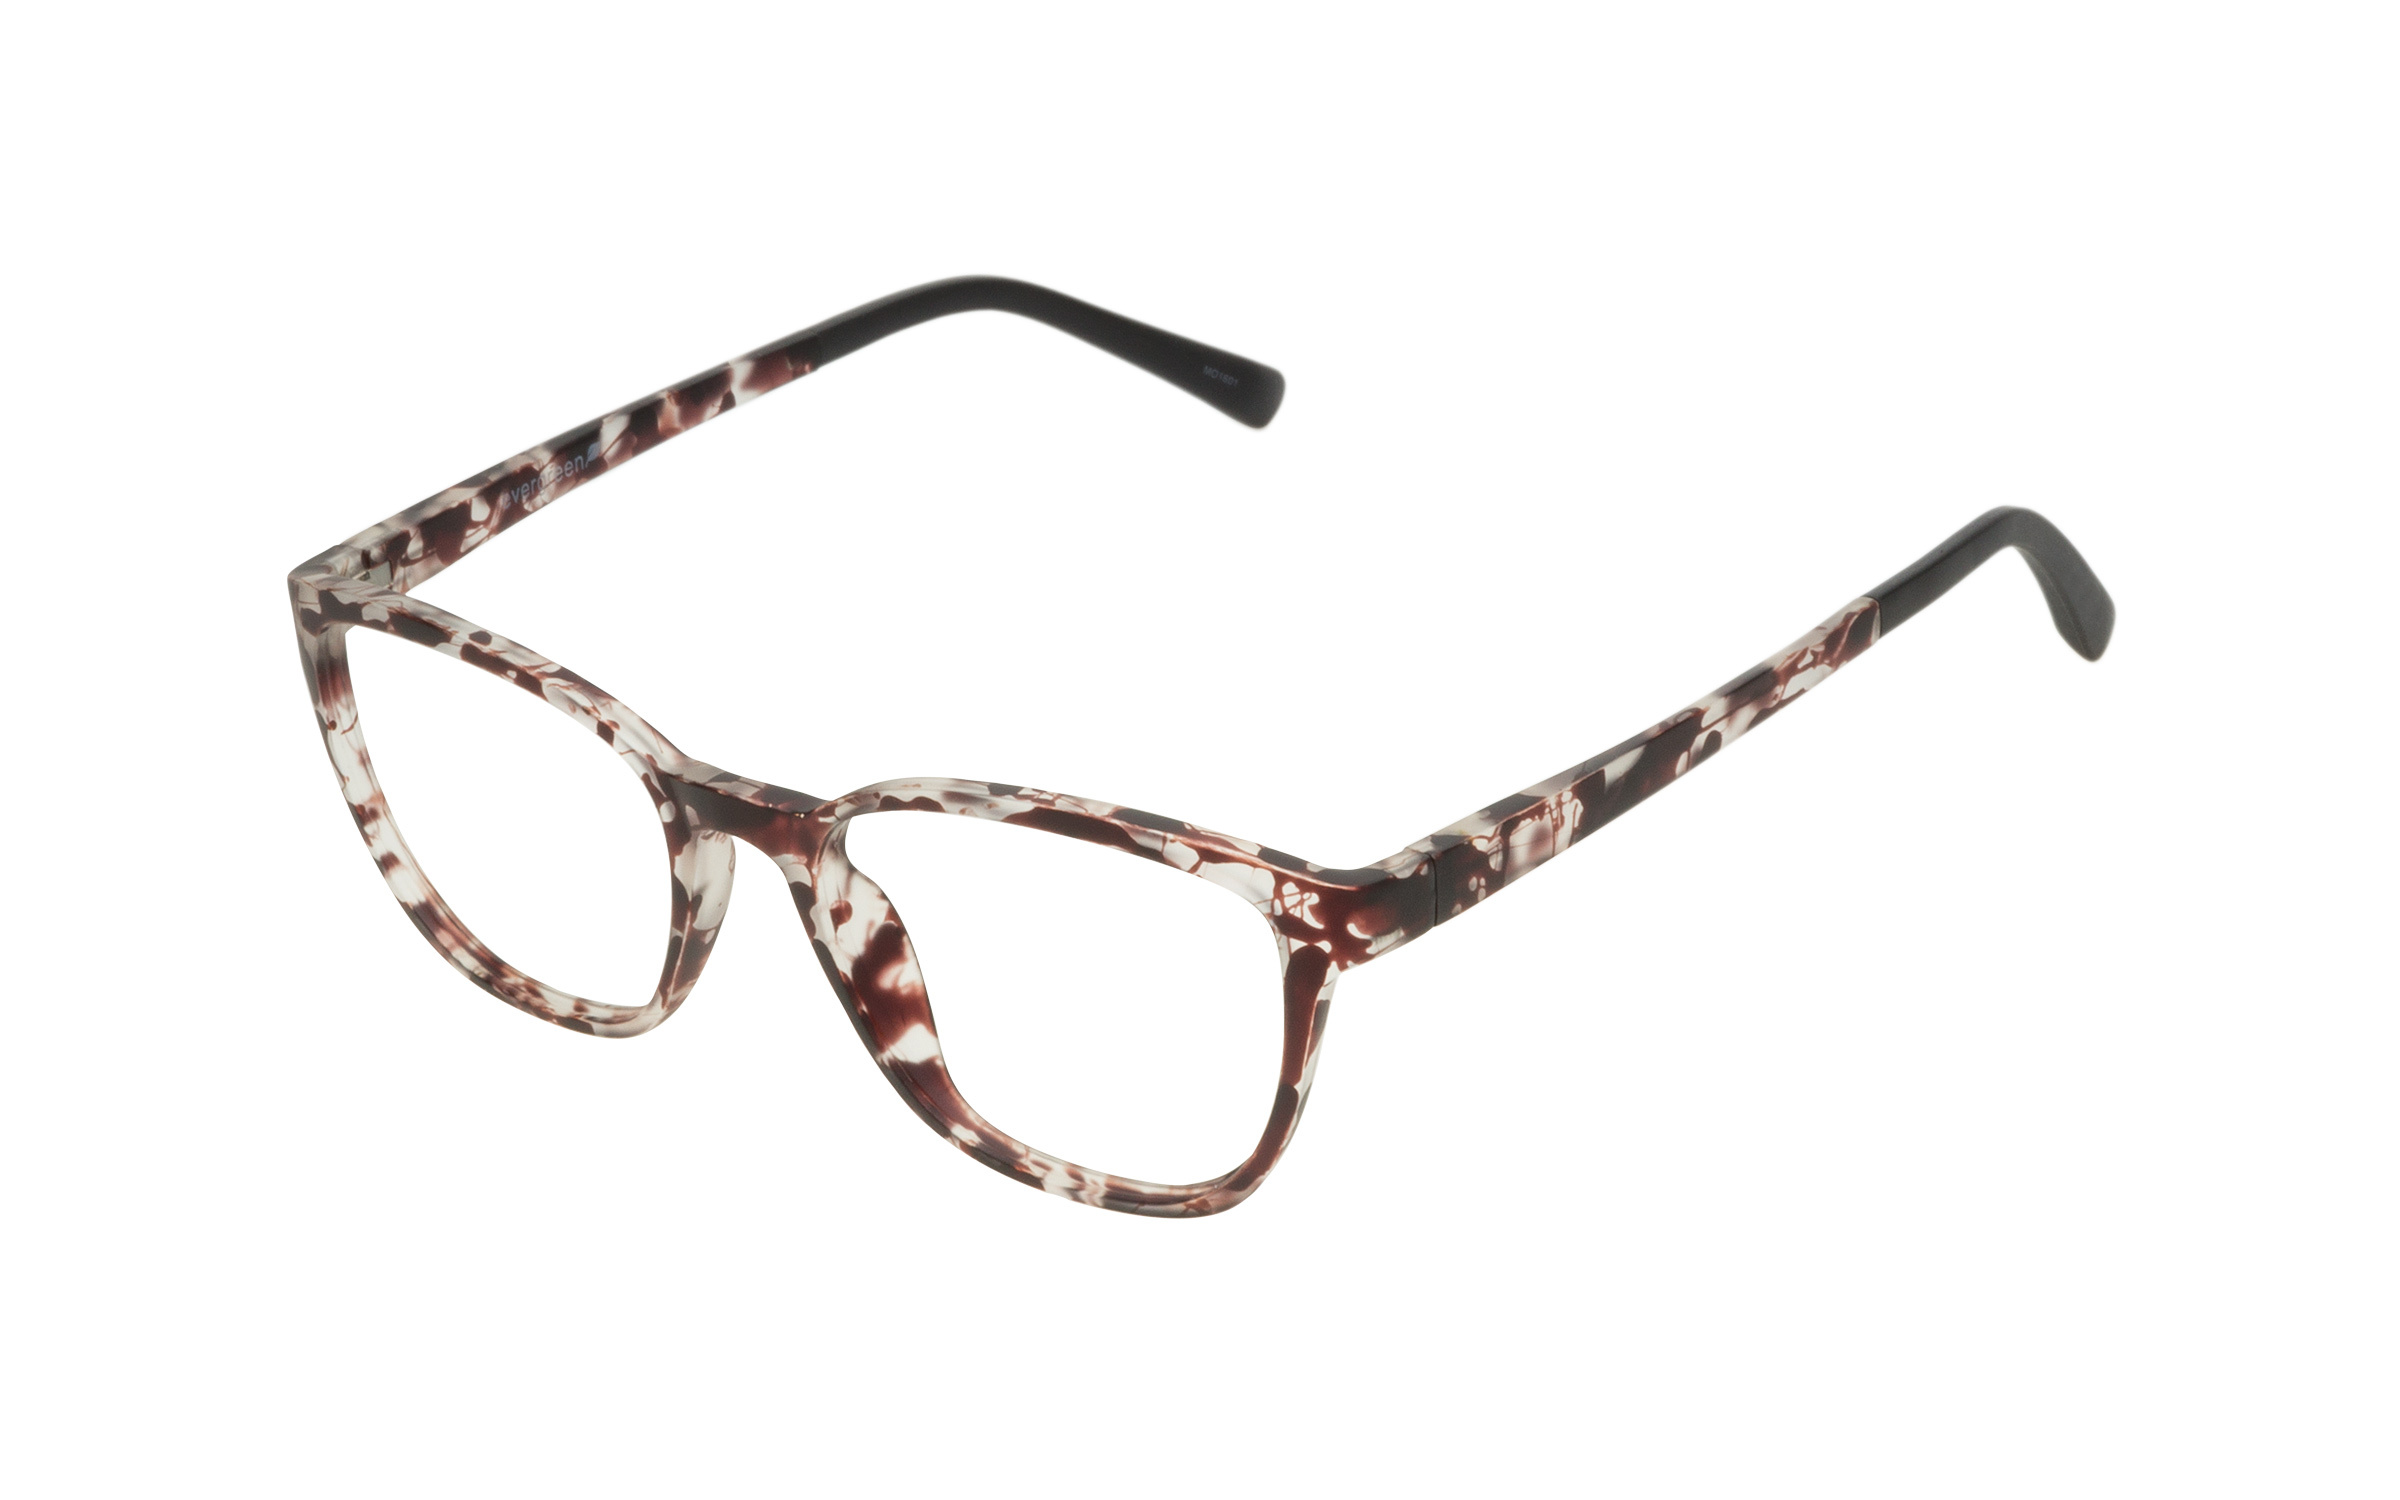 shop with confidence for evergreen 6048 50 glasses